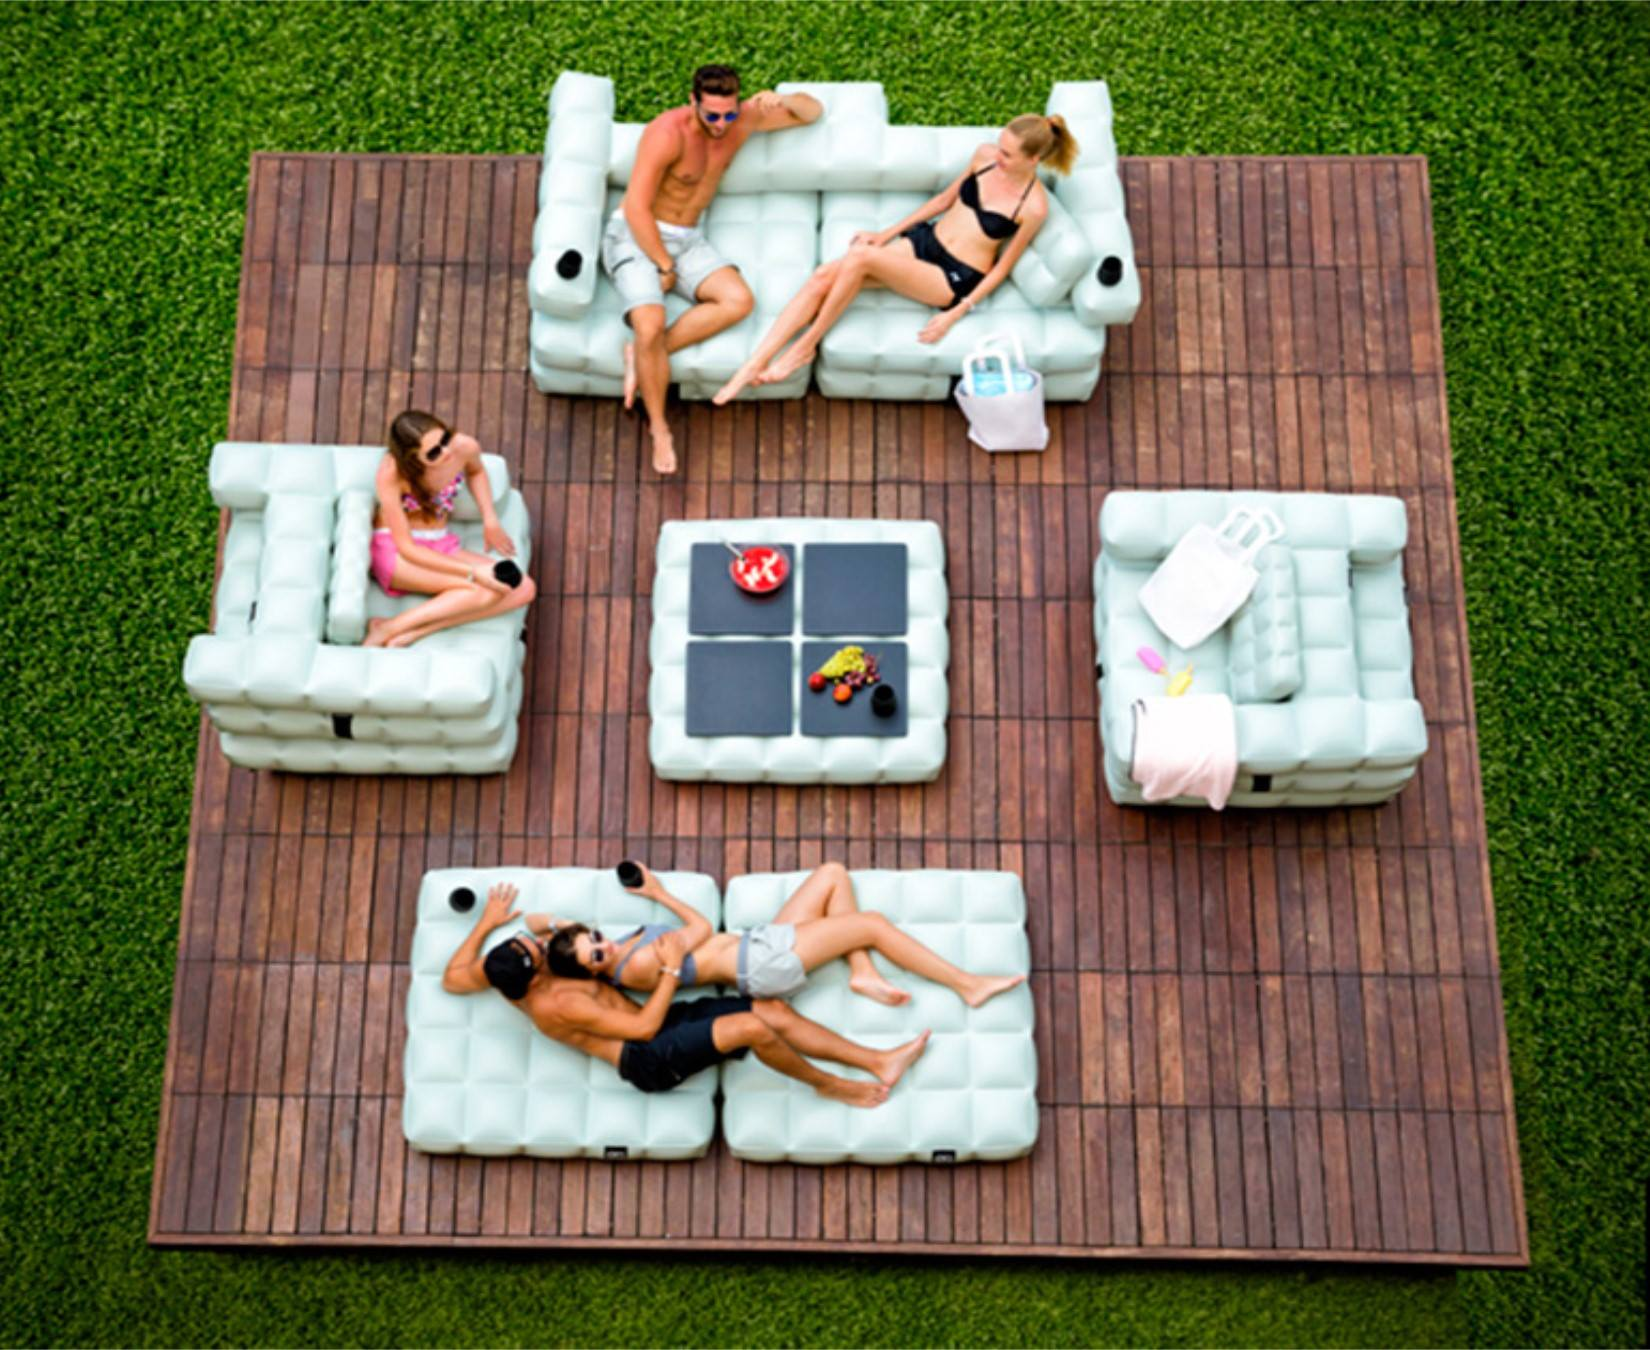 inflatable lawn chair desk london floating oasis pool furniture couture outdoor